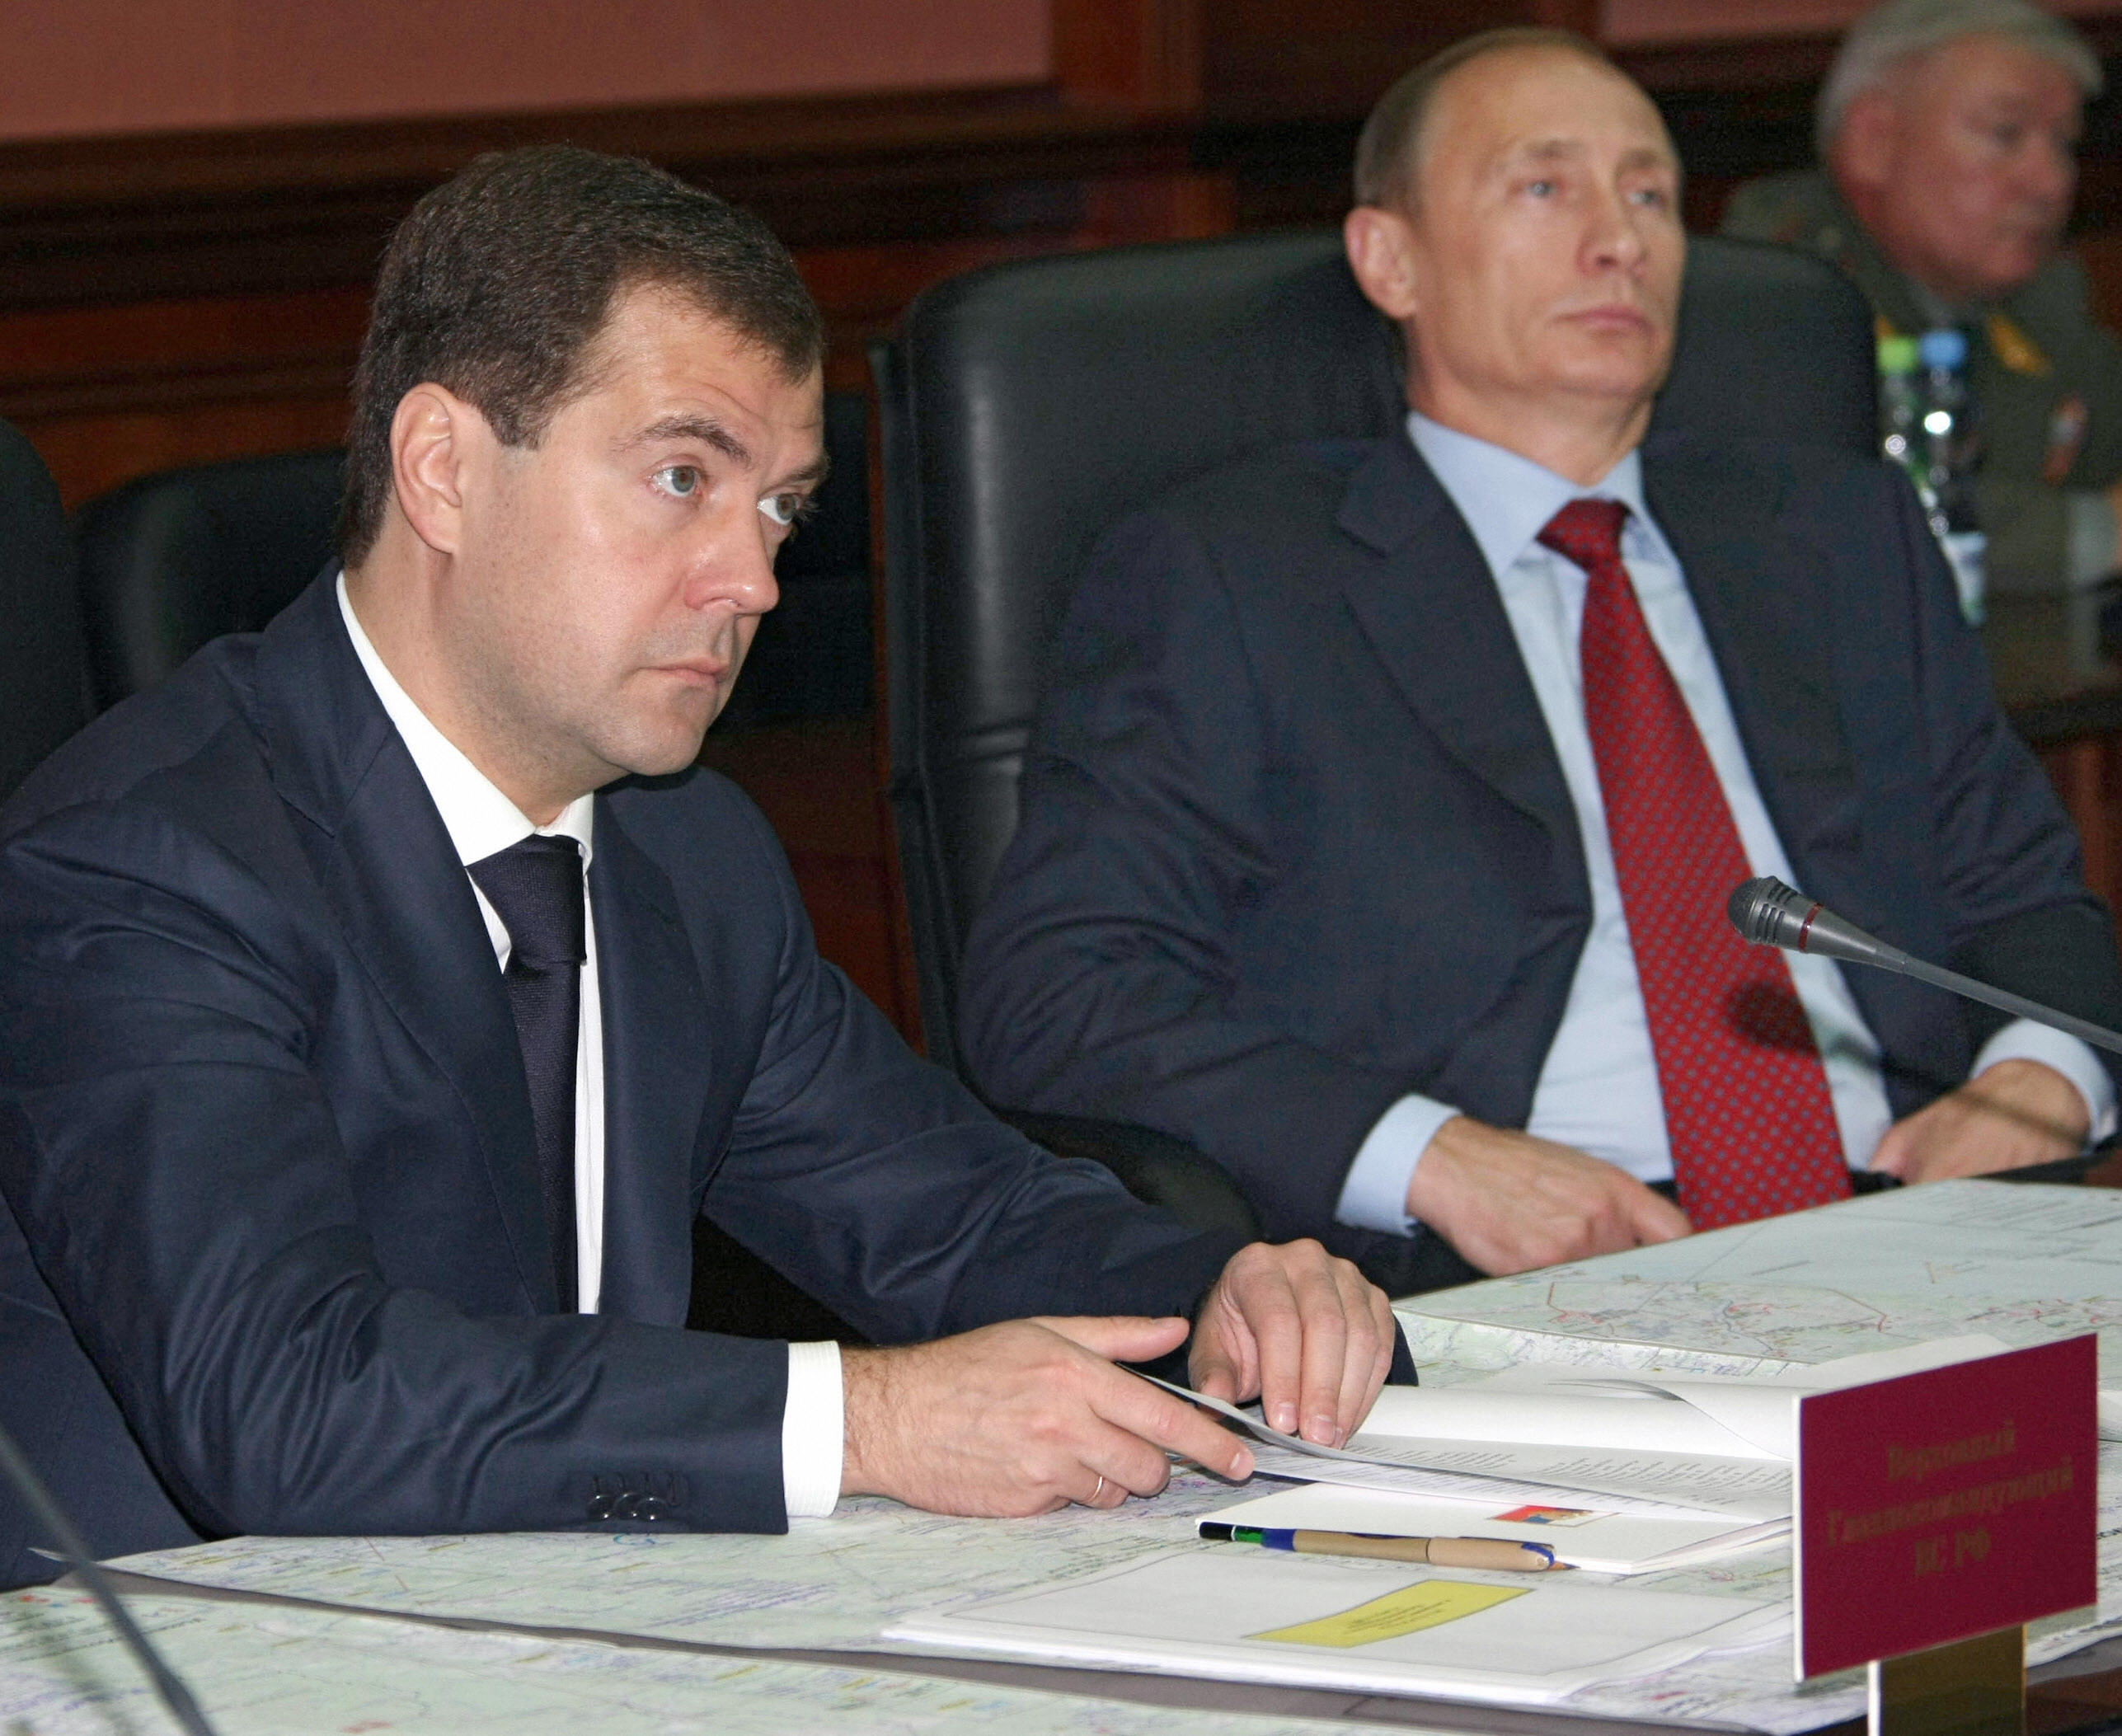 The two heads attend a conference in the Central command point of the Russian military forces.